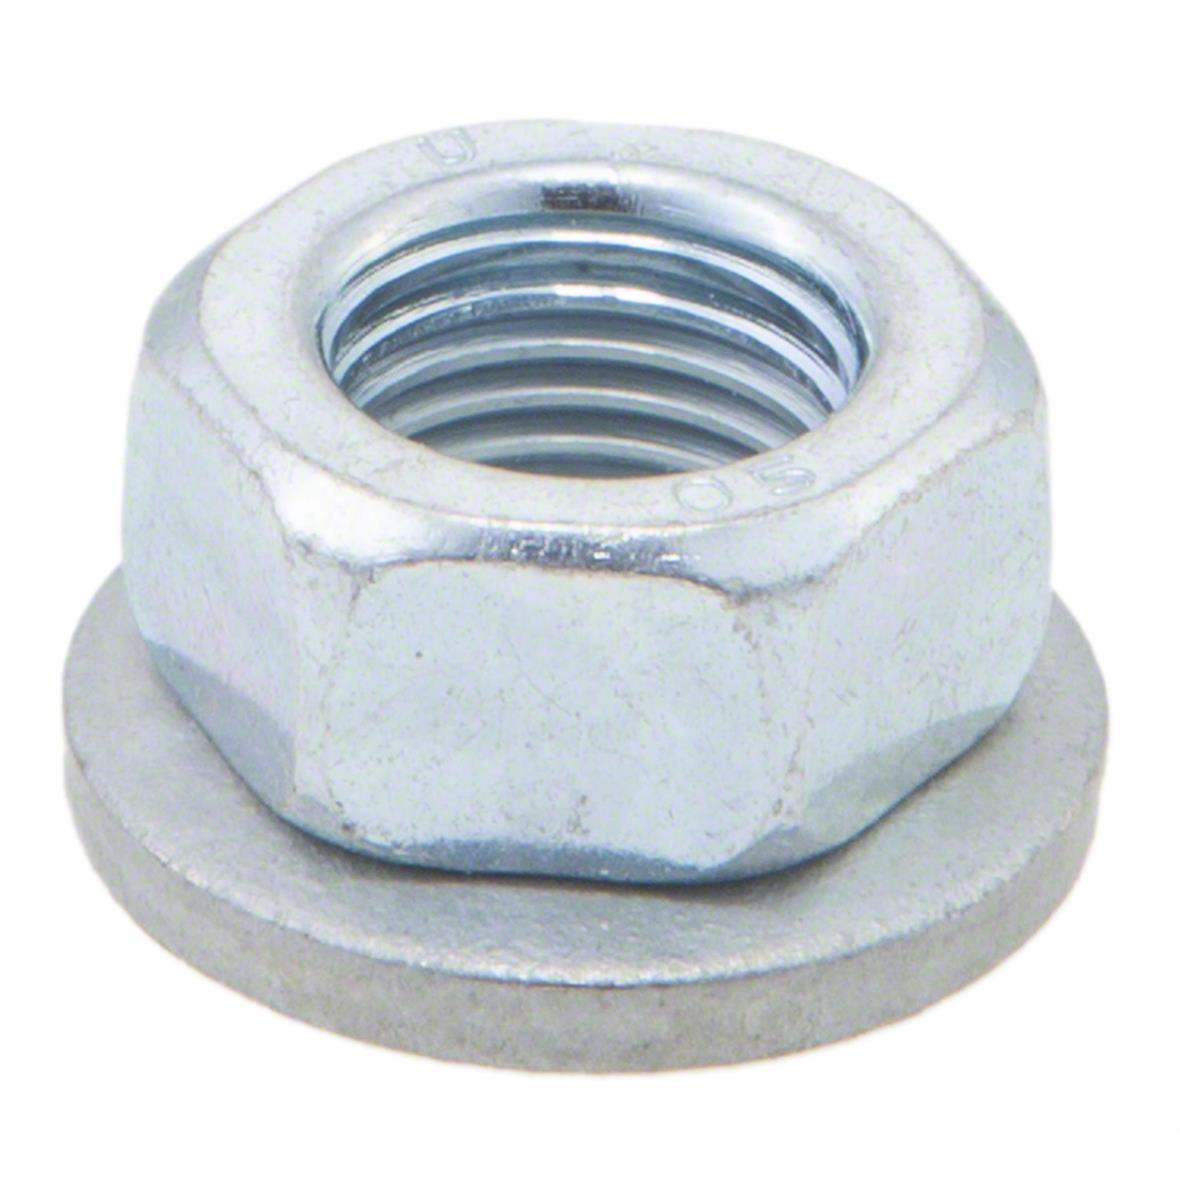 Product Image for 'Nut M12x1,25 mm, Variomatic/ clutch/ flywheelTitle'